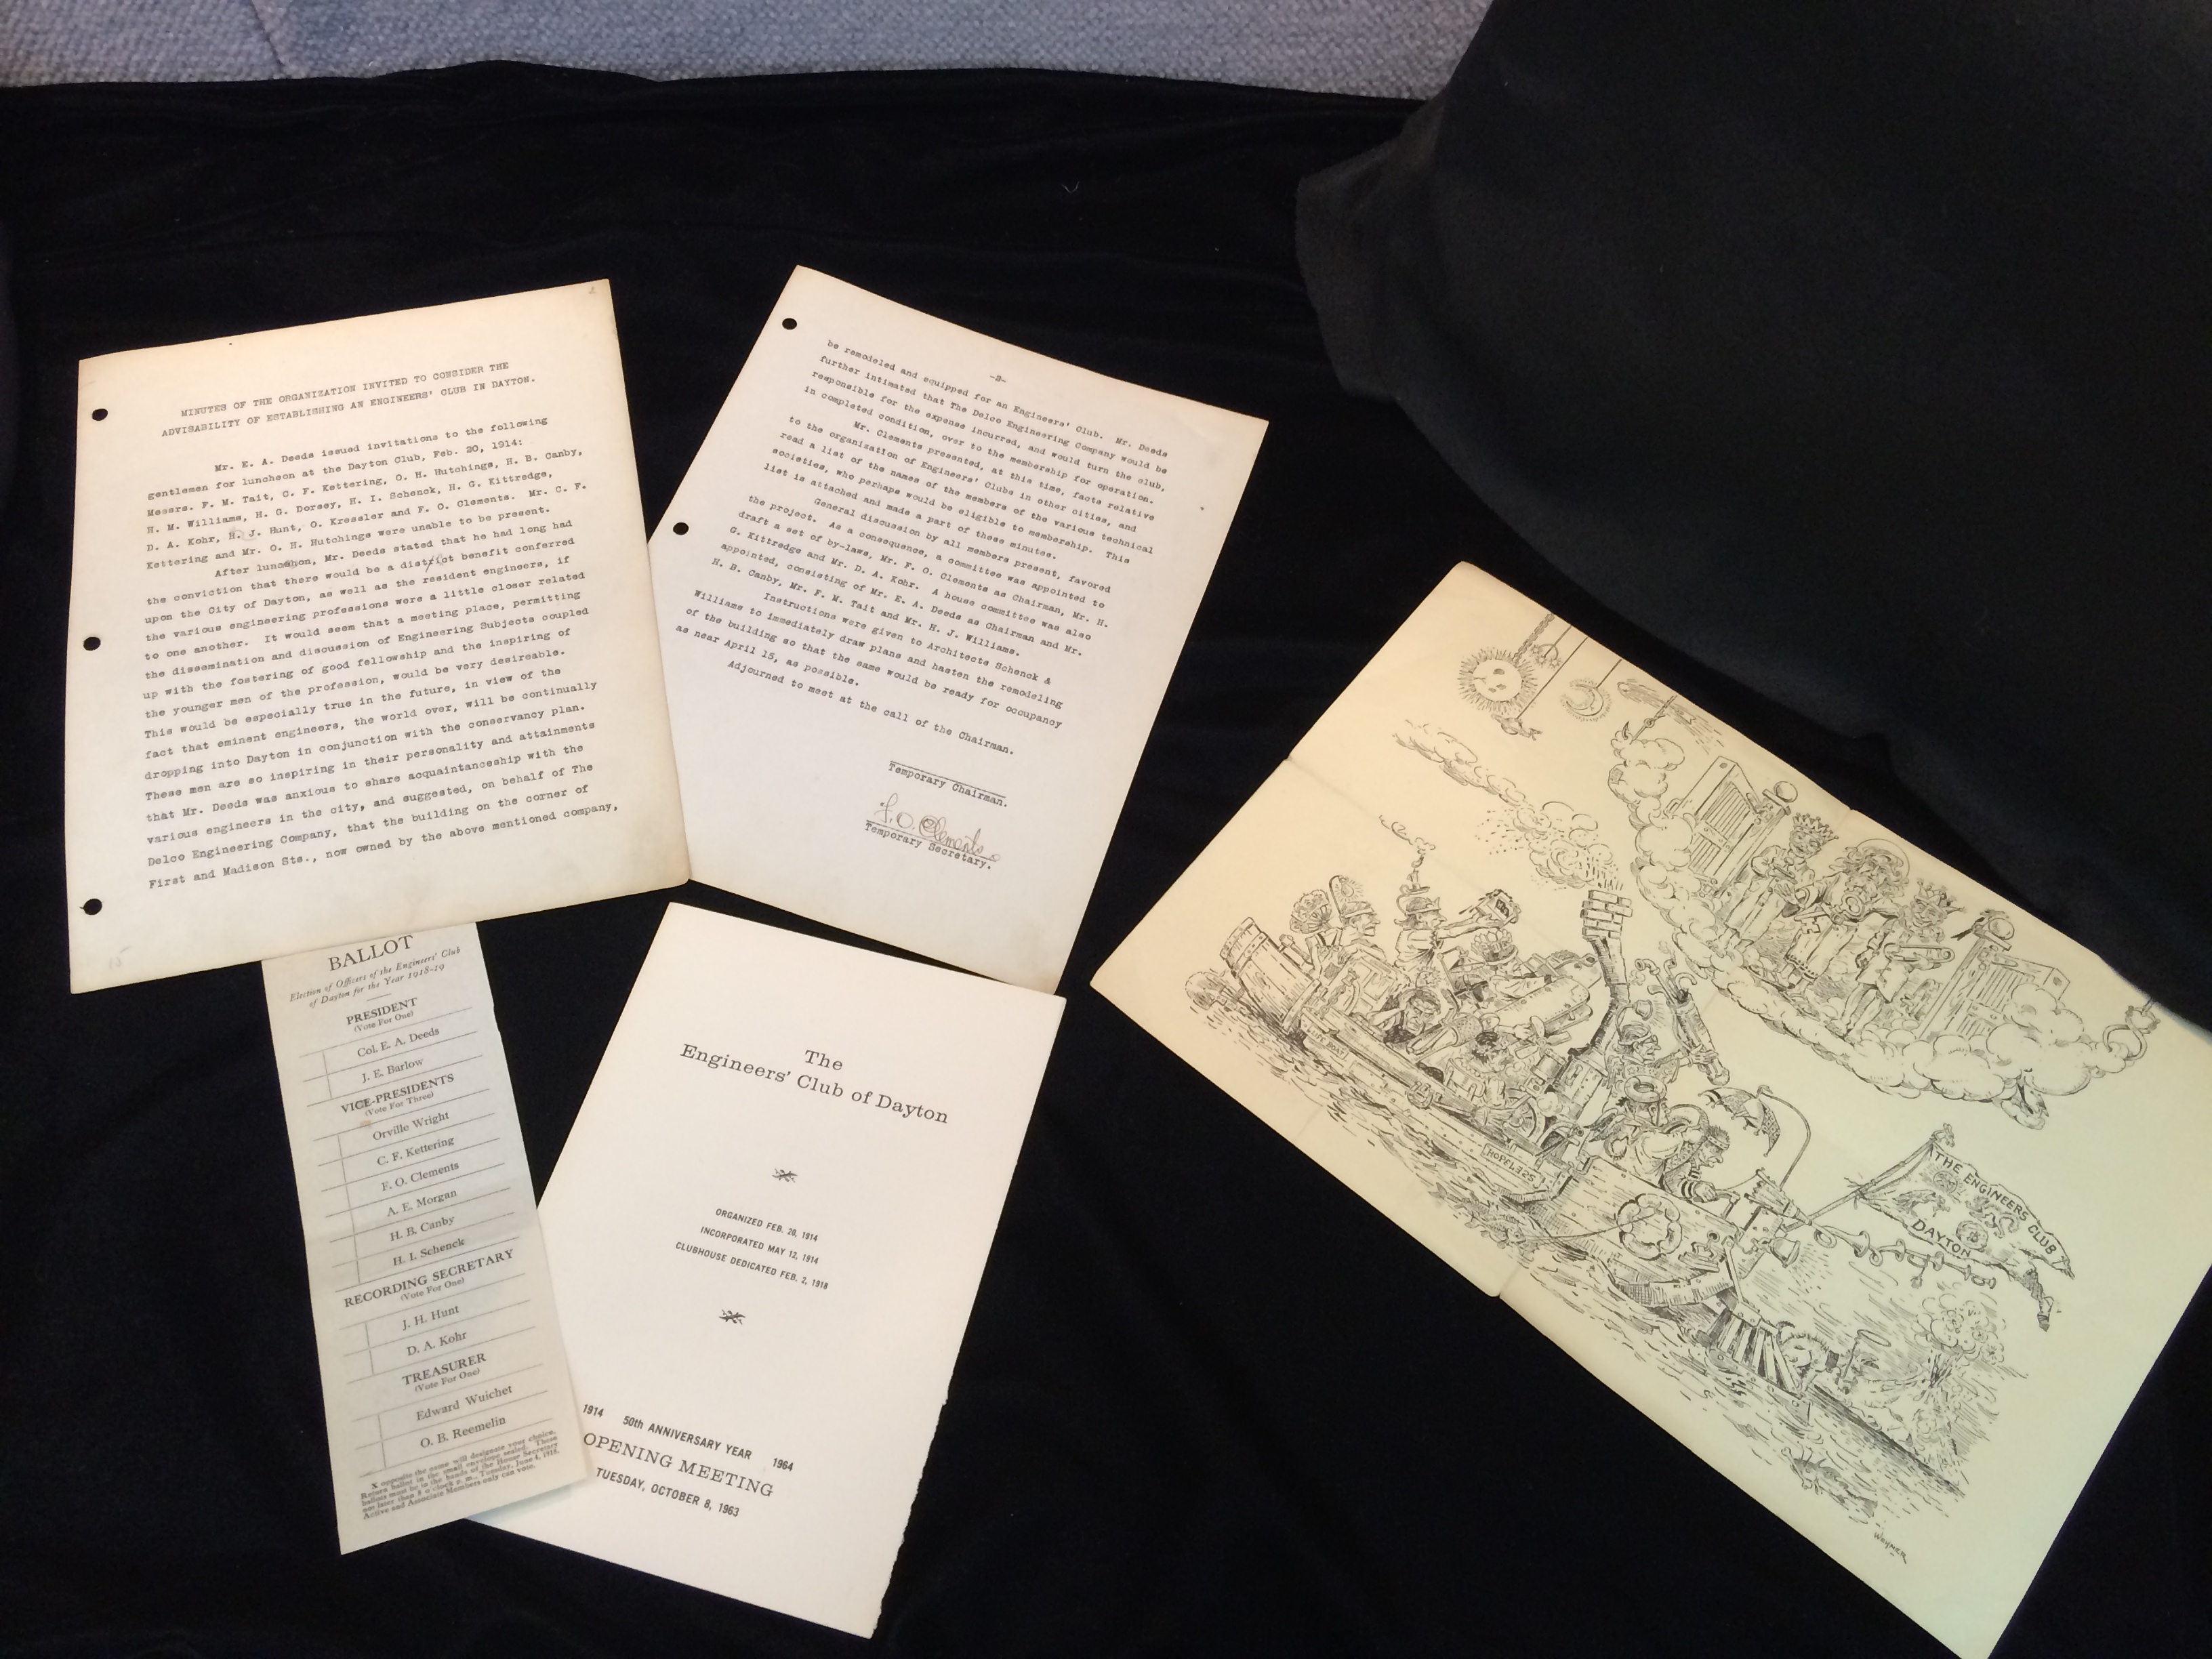 Original minutes, programs, and illustrations